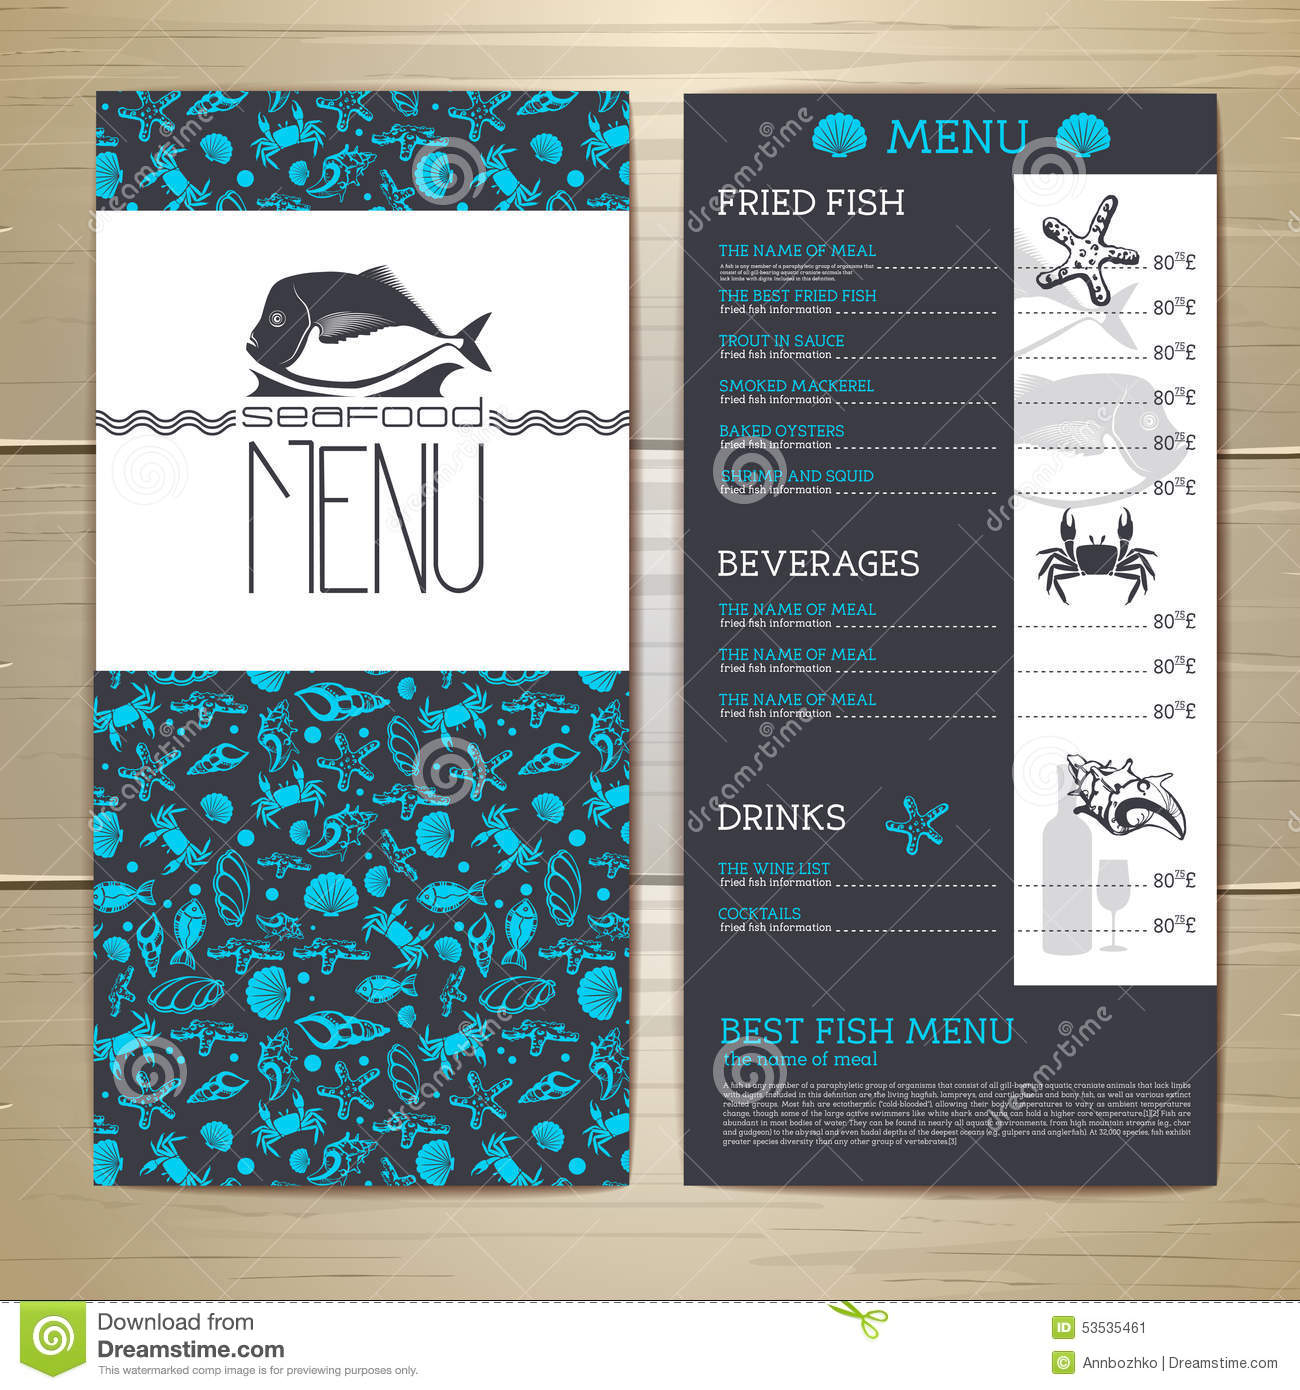 seafood cafe menu design  stock vector  illustration of